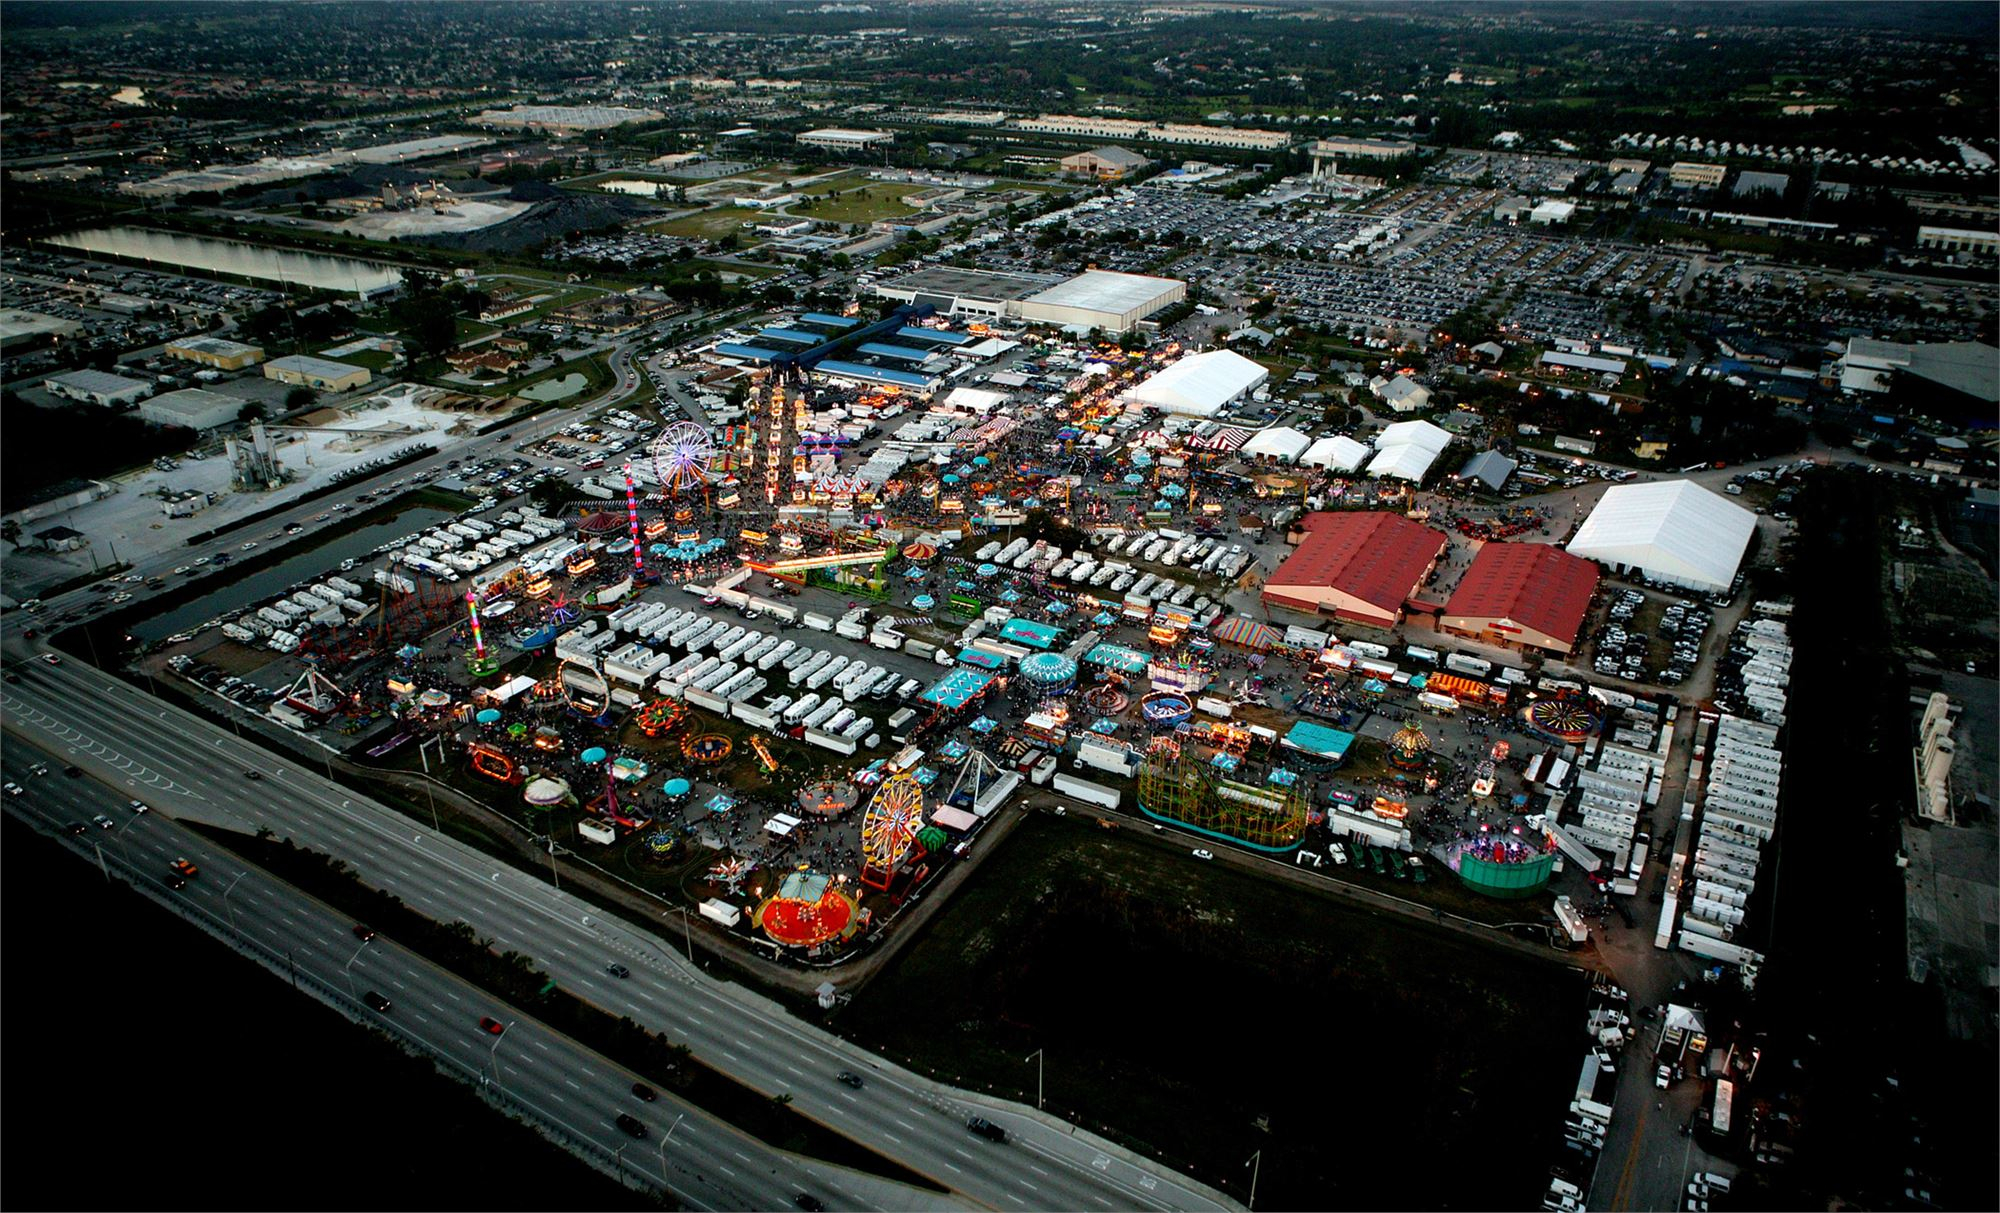 South Florida Fair | West Palm Beach, Fl | 561.793.0333 Regarding South Florida Fairgrounds Events 2021